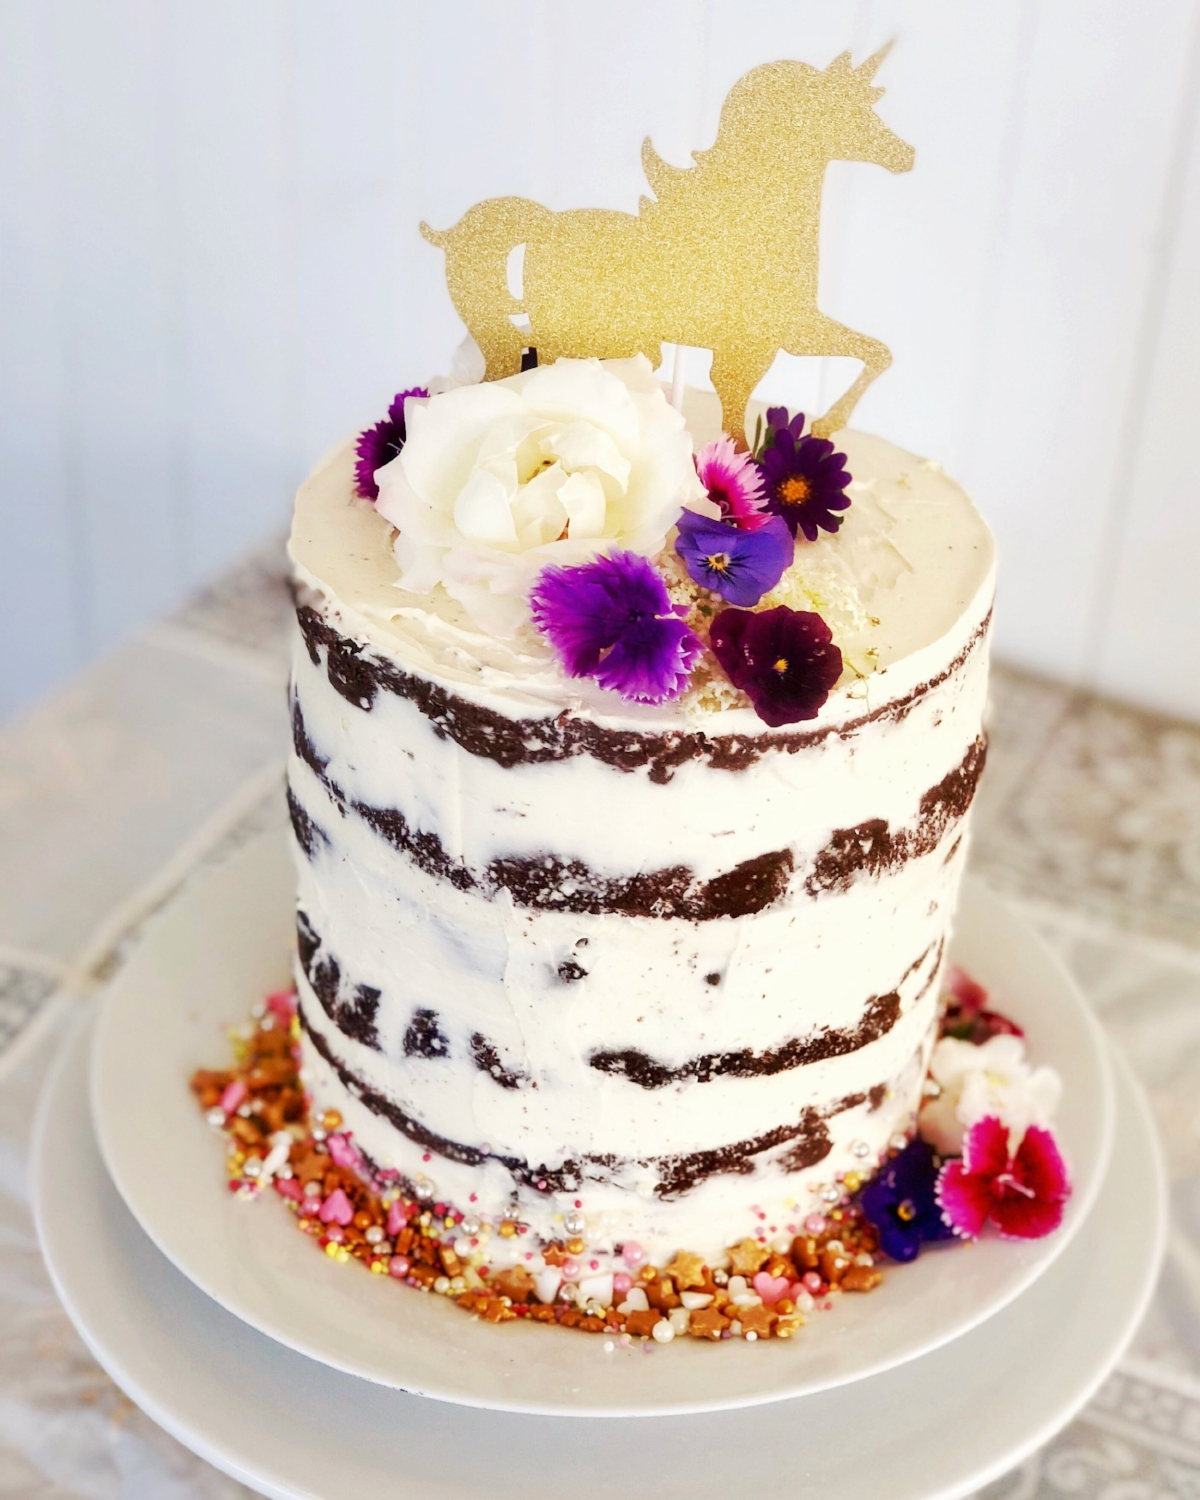 CELEBRATION CAKE - Our chef can customise a beautiful semi-naked style celebration cake adorned with fresh flowers to provide a decadent finale to your child's party.